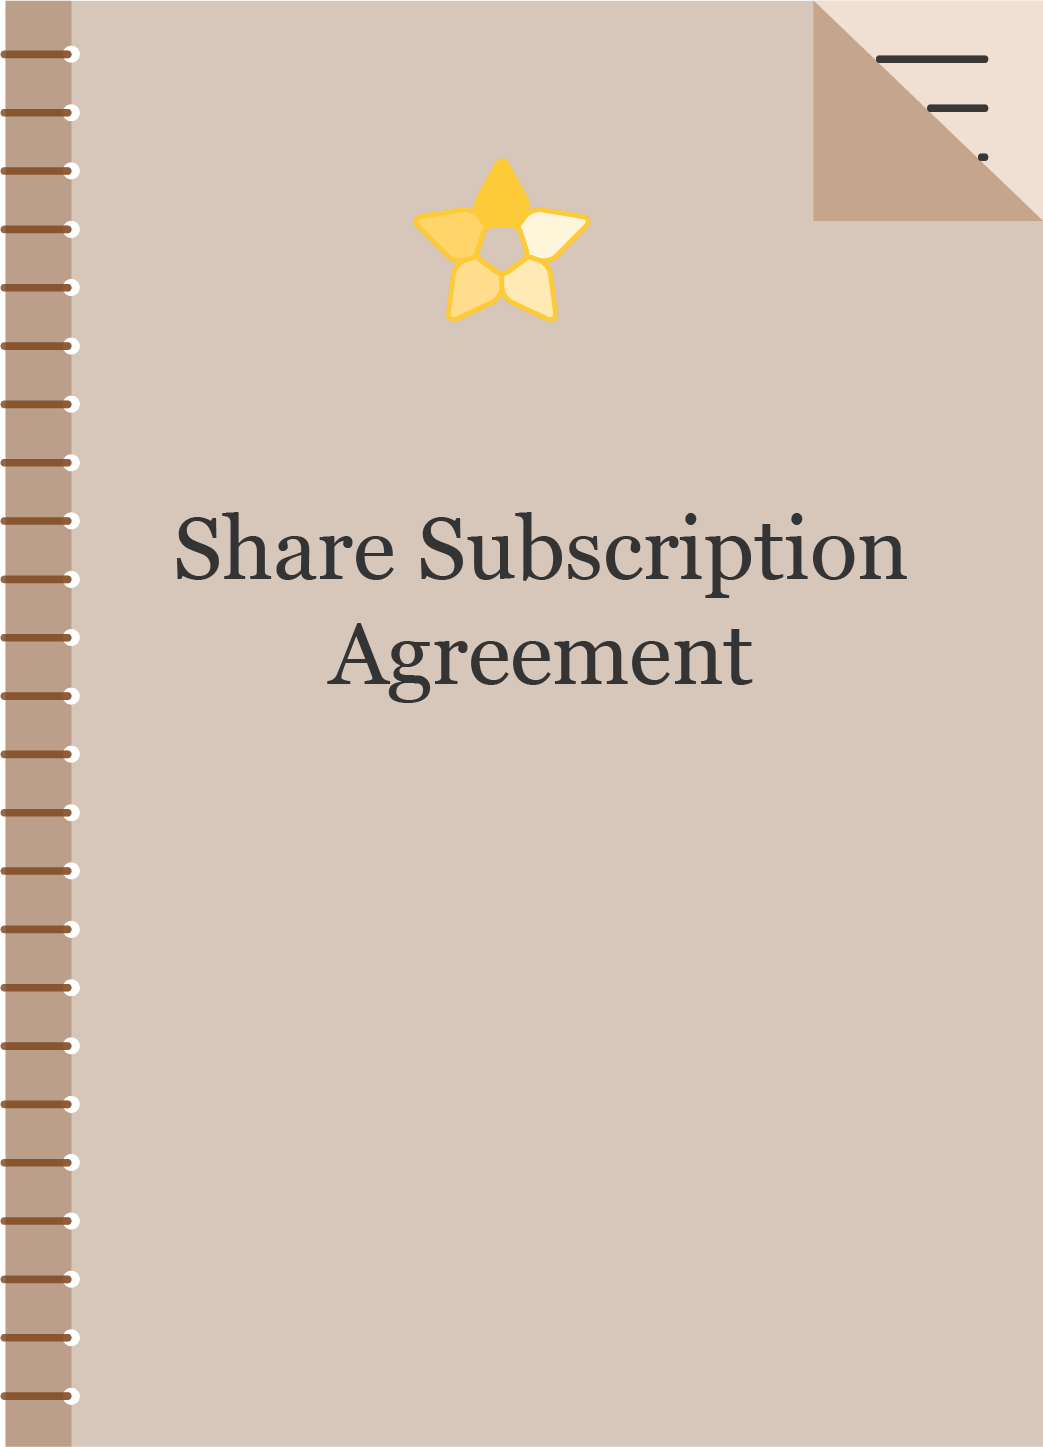 share-subscription-agreement-77c5c676dc6c3f27f6105de31132846d.png